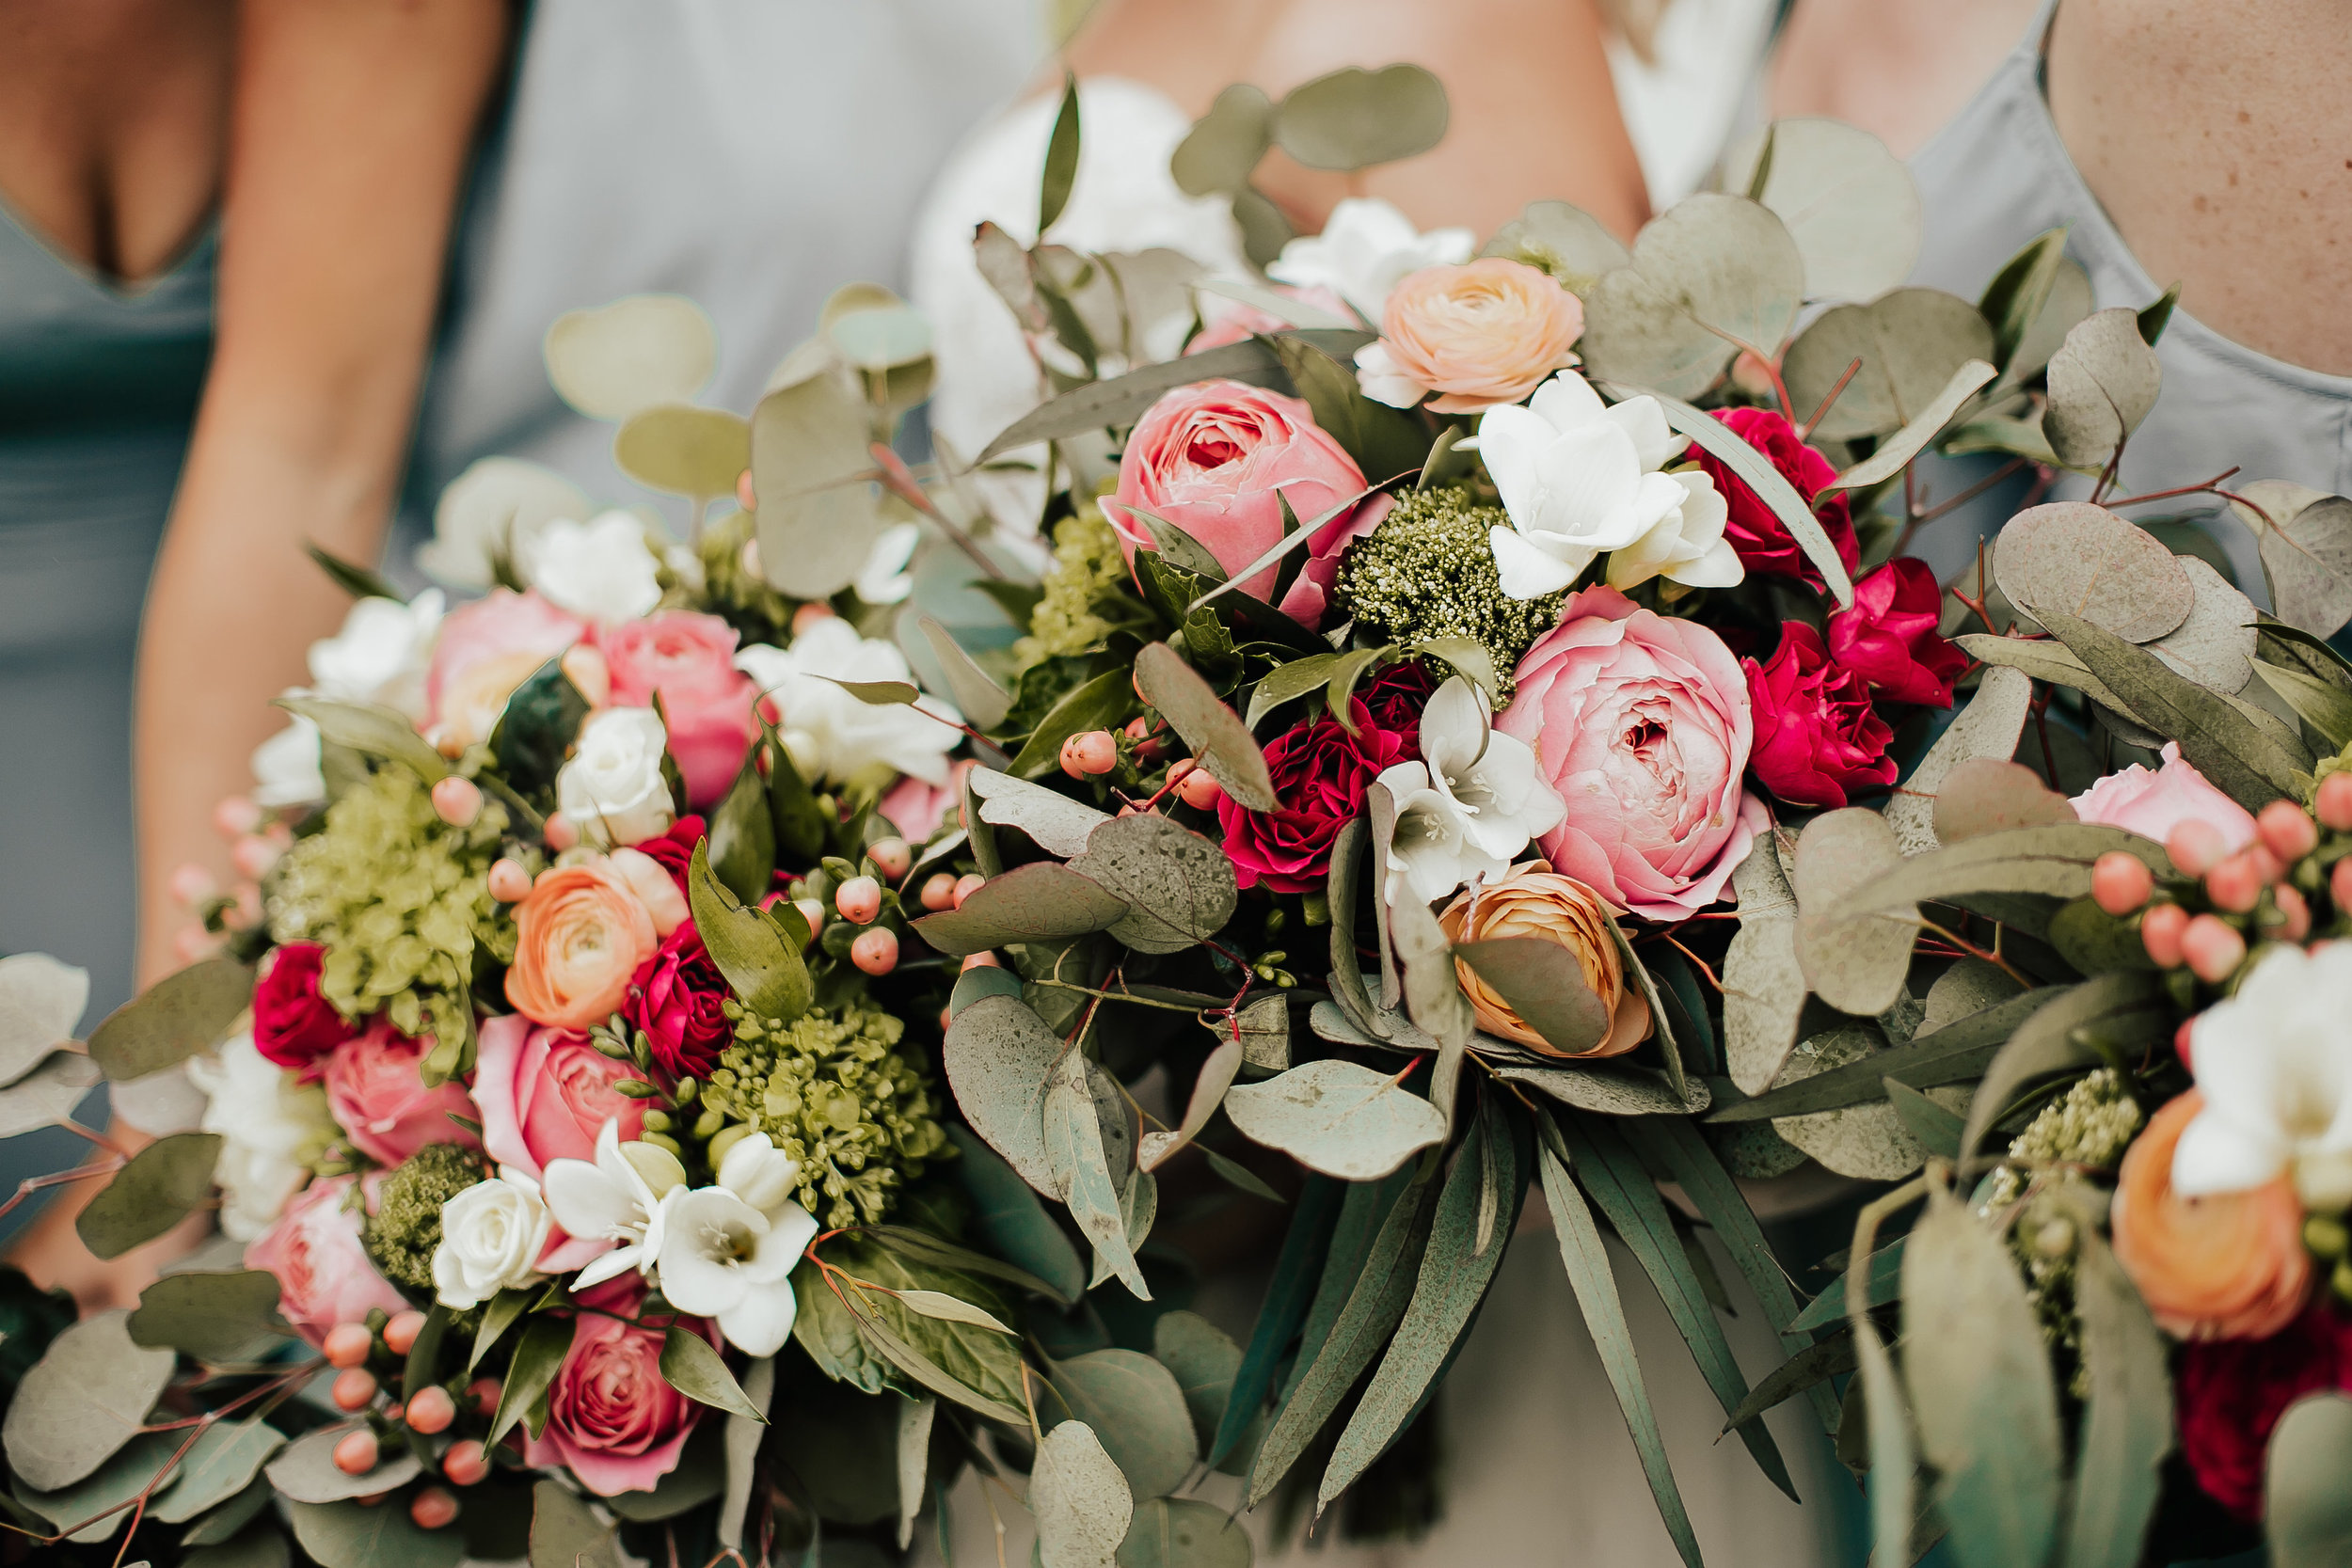 Legacy-Hil-Farm-Wedding-Bridal-Bouquet-MN.jpg